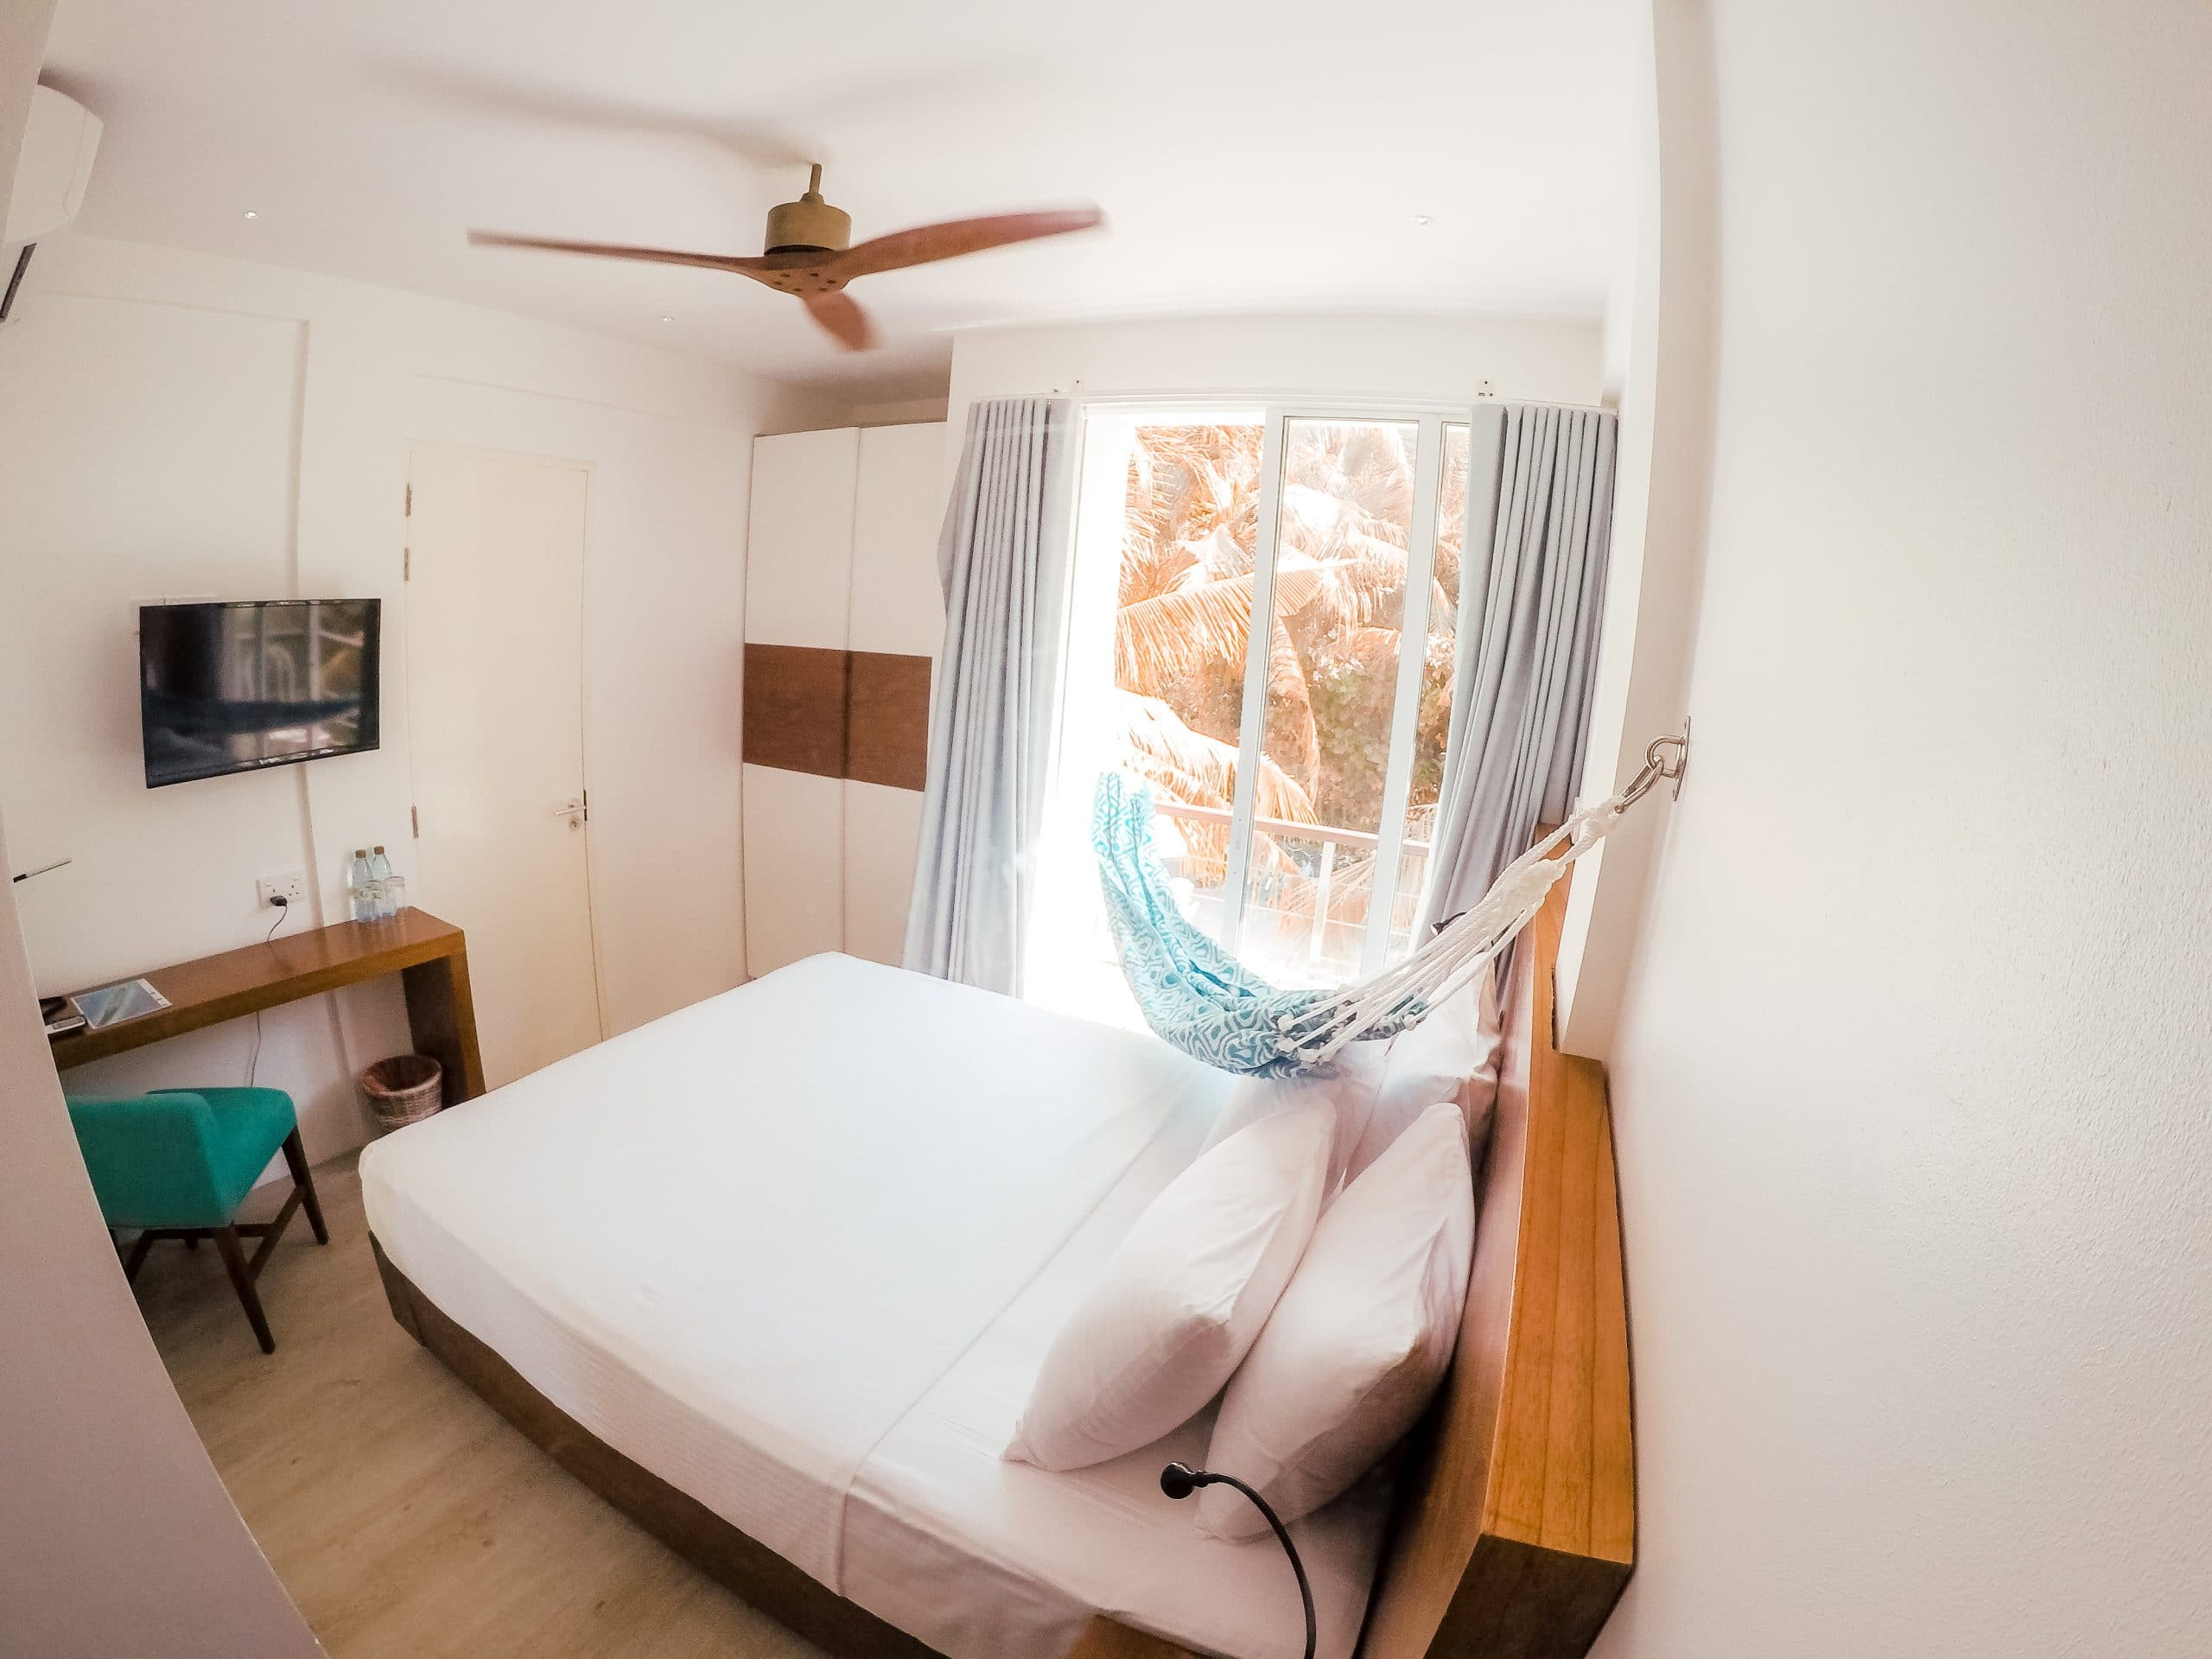 Compact Room - Image of one of Bliss' room types. Equipped with hammock, AC, TV and more